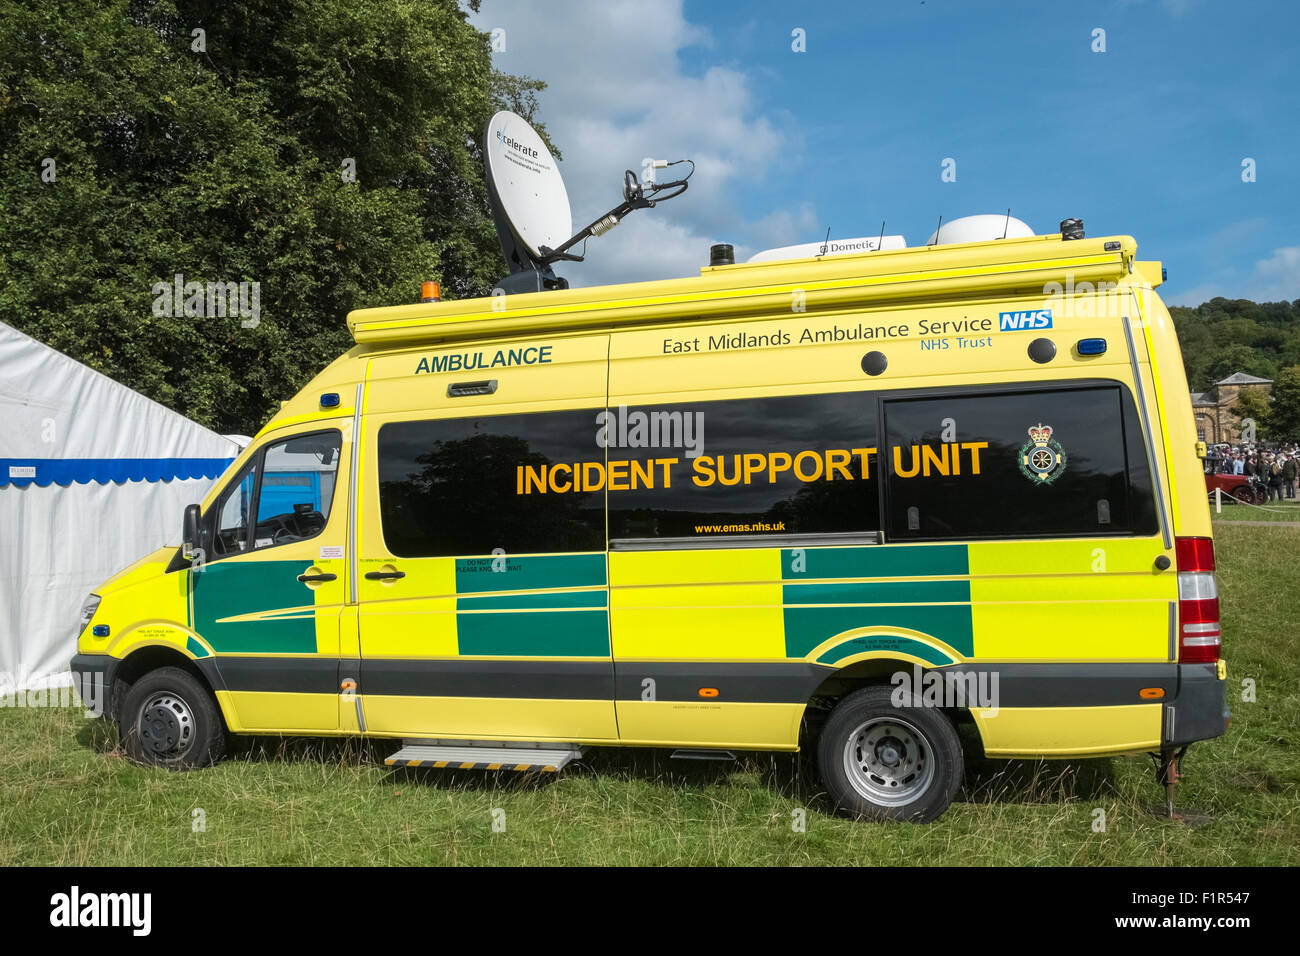 East Midlands Ambulance Service Incidence Support Unit vehicle at a Country Fair event, England UK - Stock Image